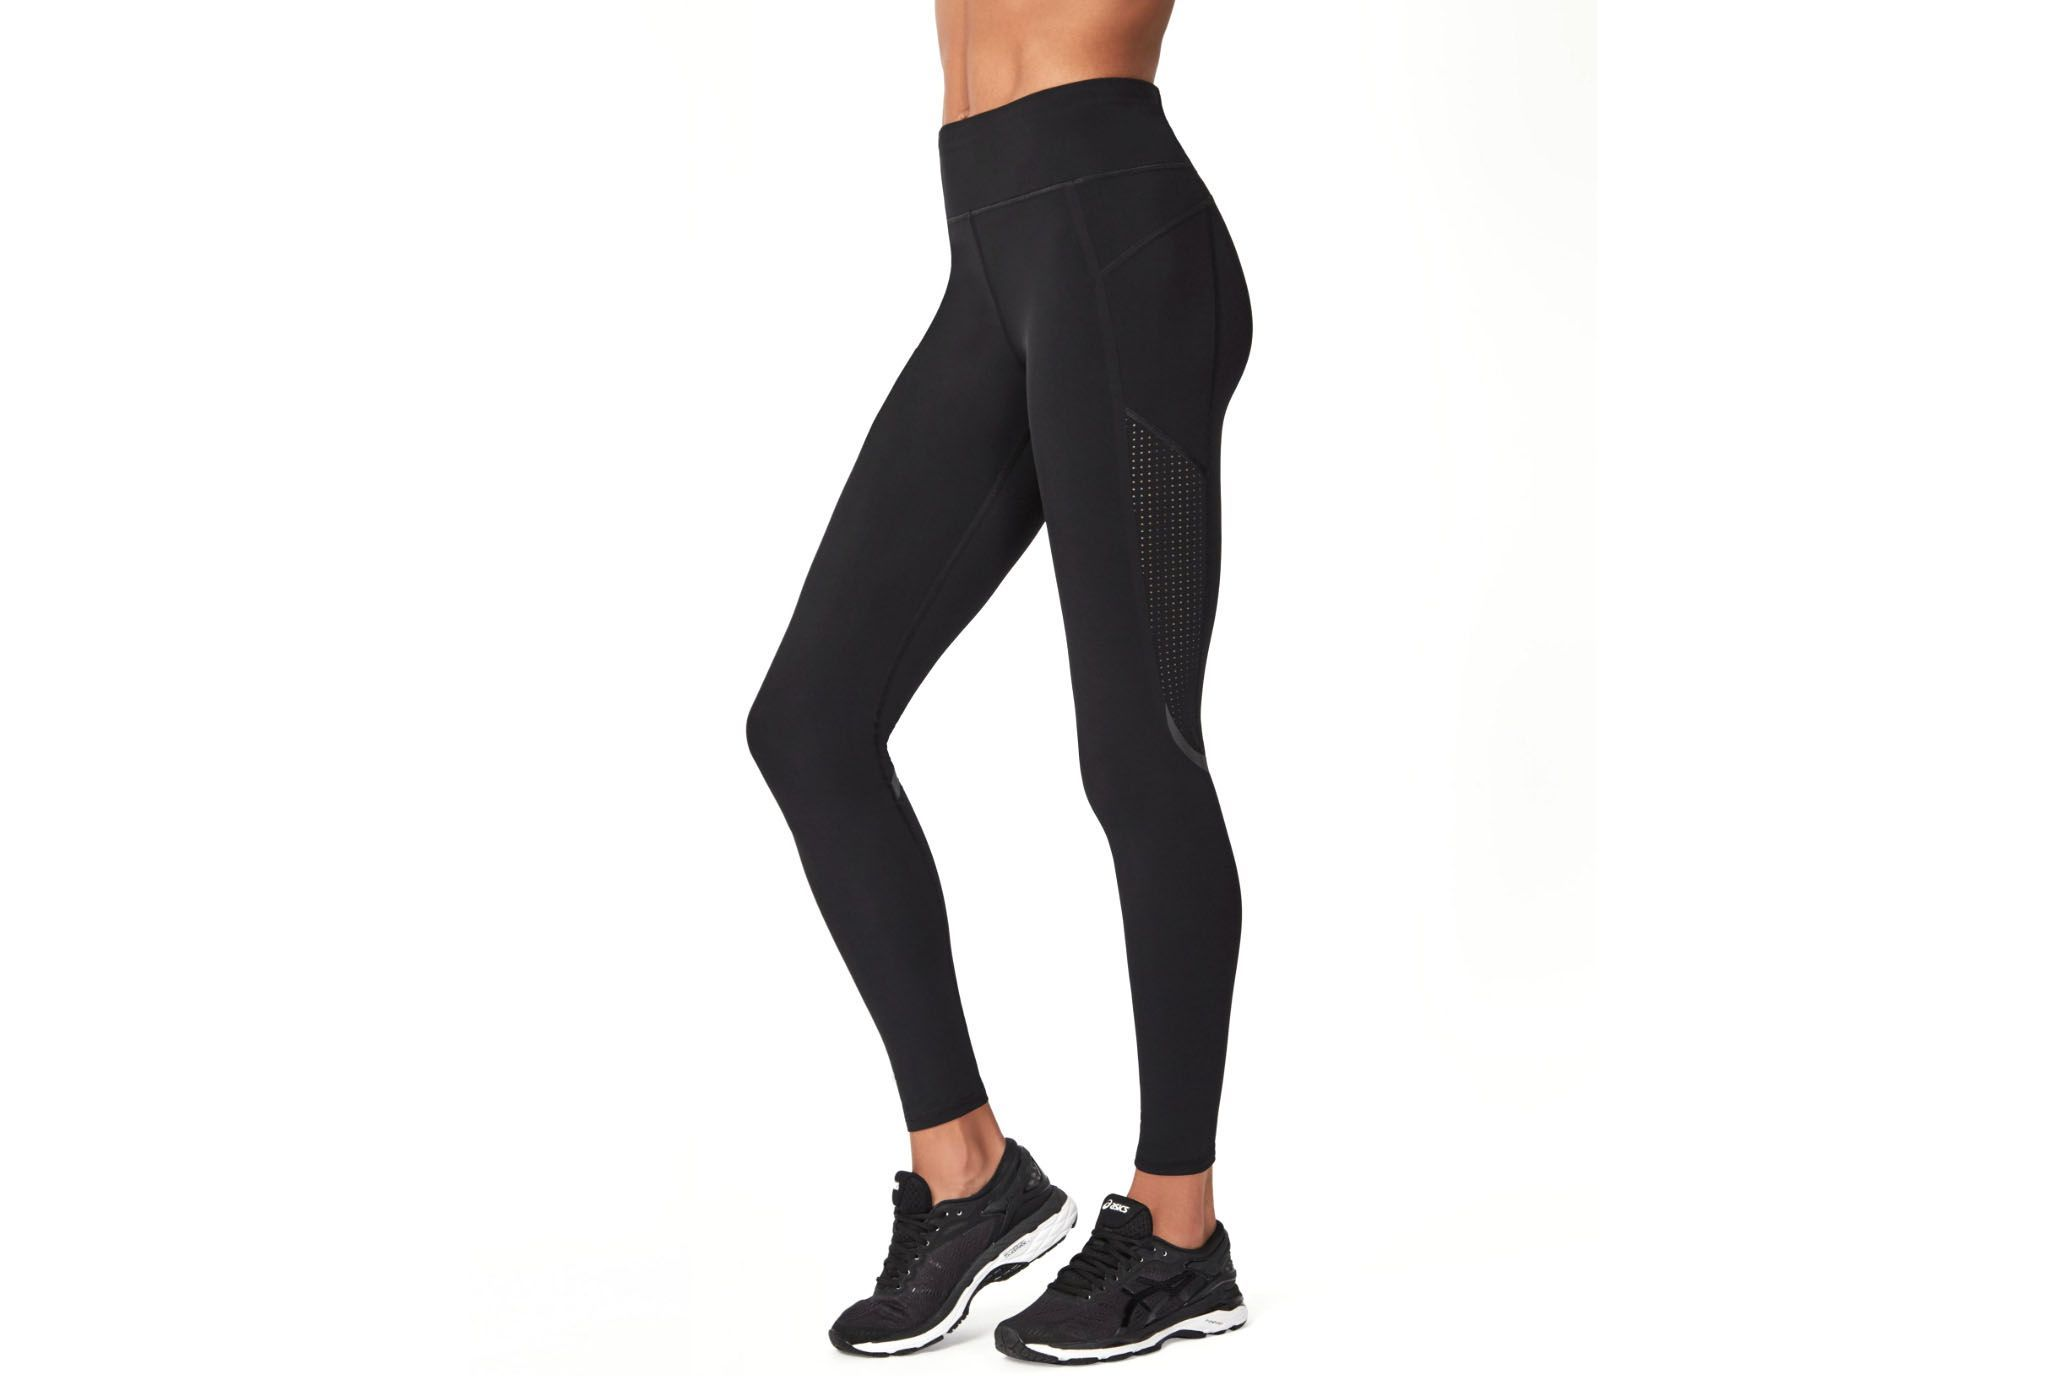 Unique Features Best Nike Running Tights Free 4.0 Ice Blue